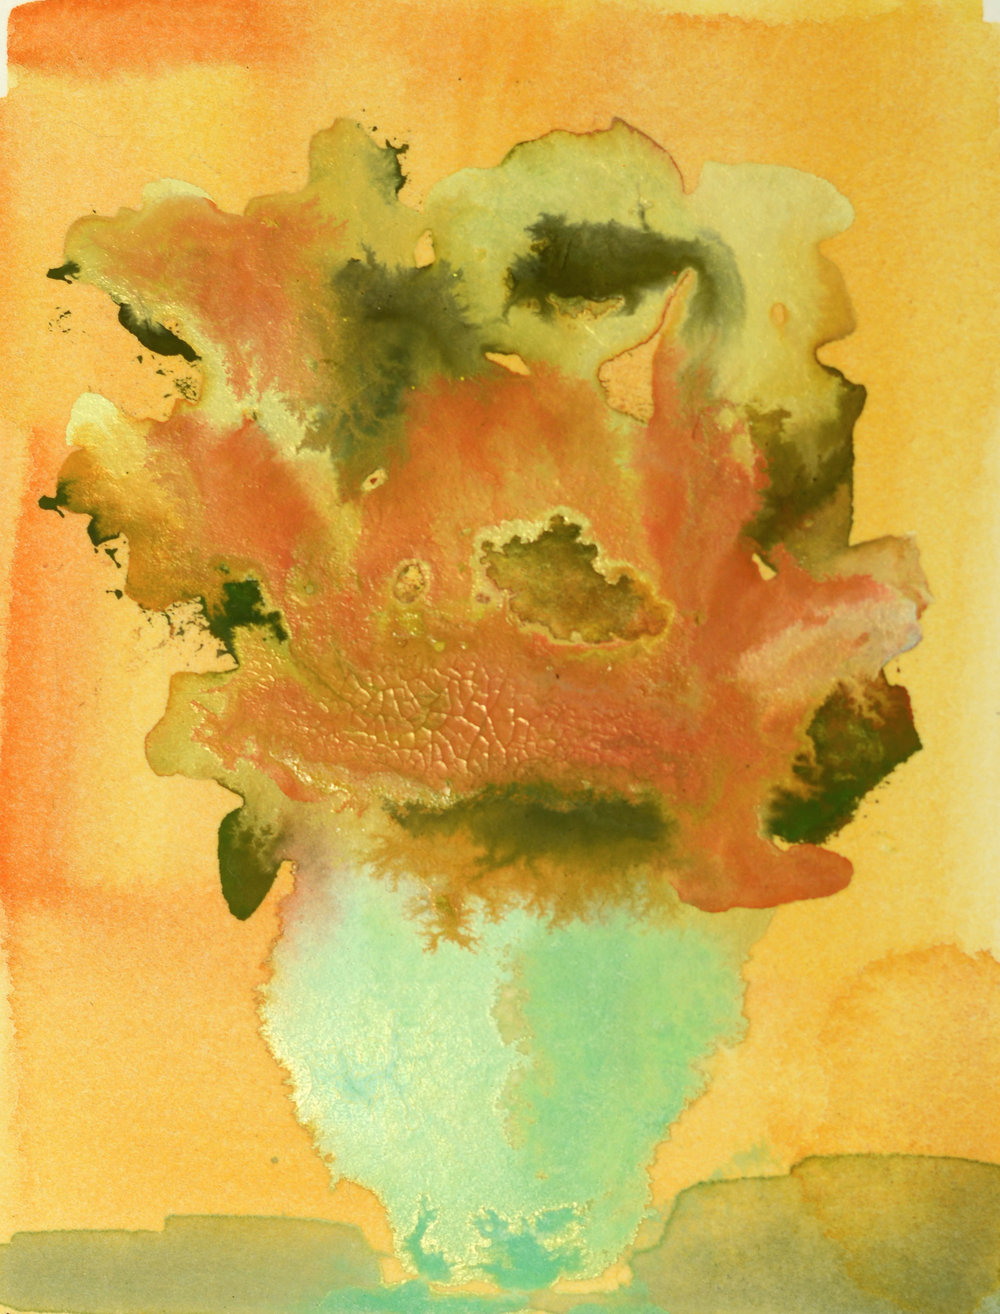 Sunflowers_4x3 inset on 11 x 7.5 paper.jpg